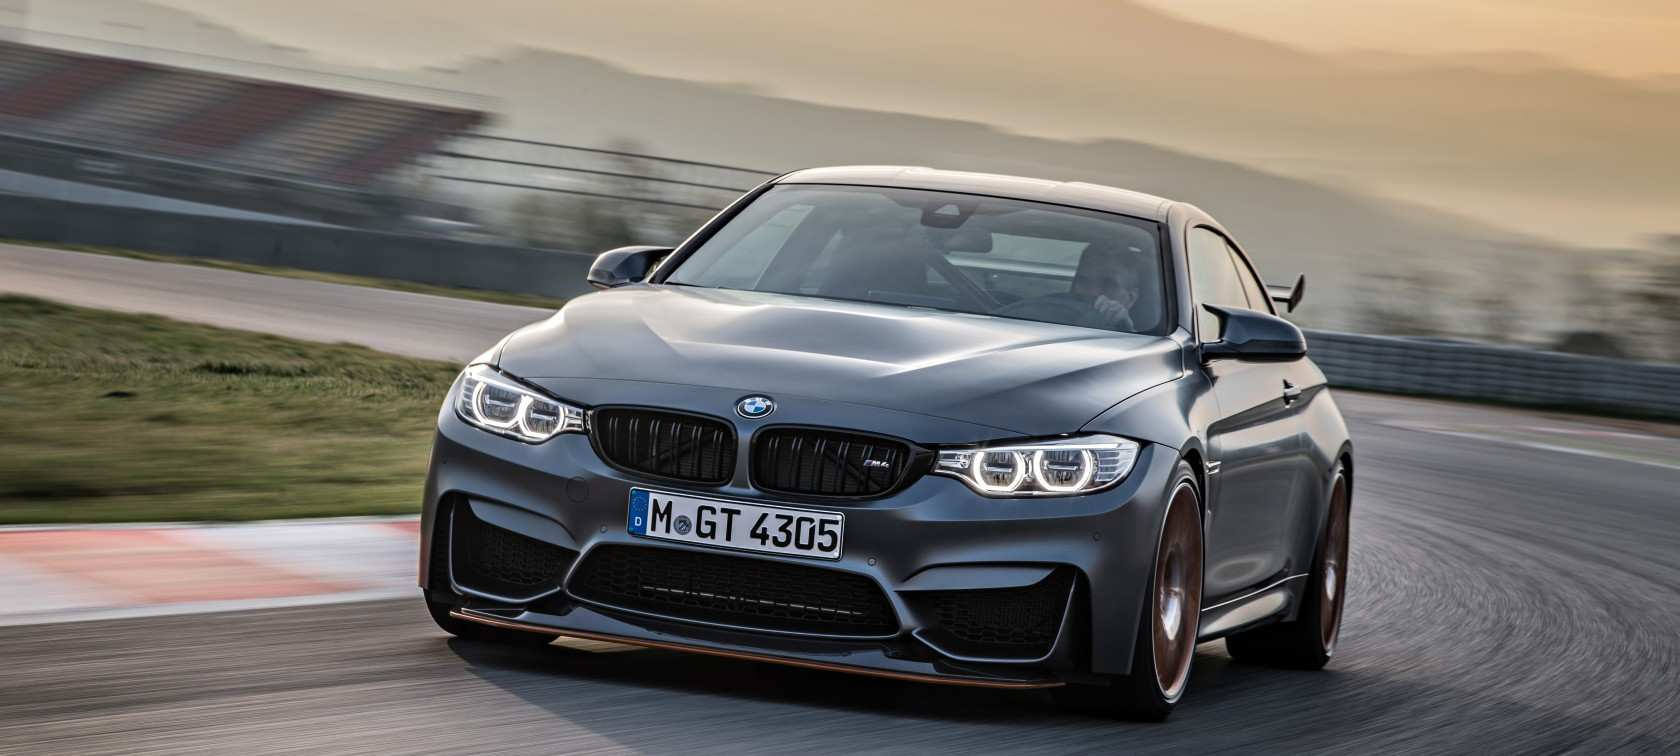 82 All New 2019 BMW M4 Gts Redesign